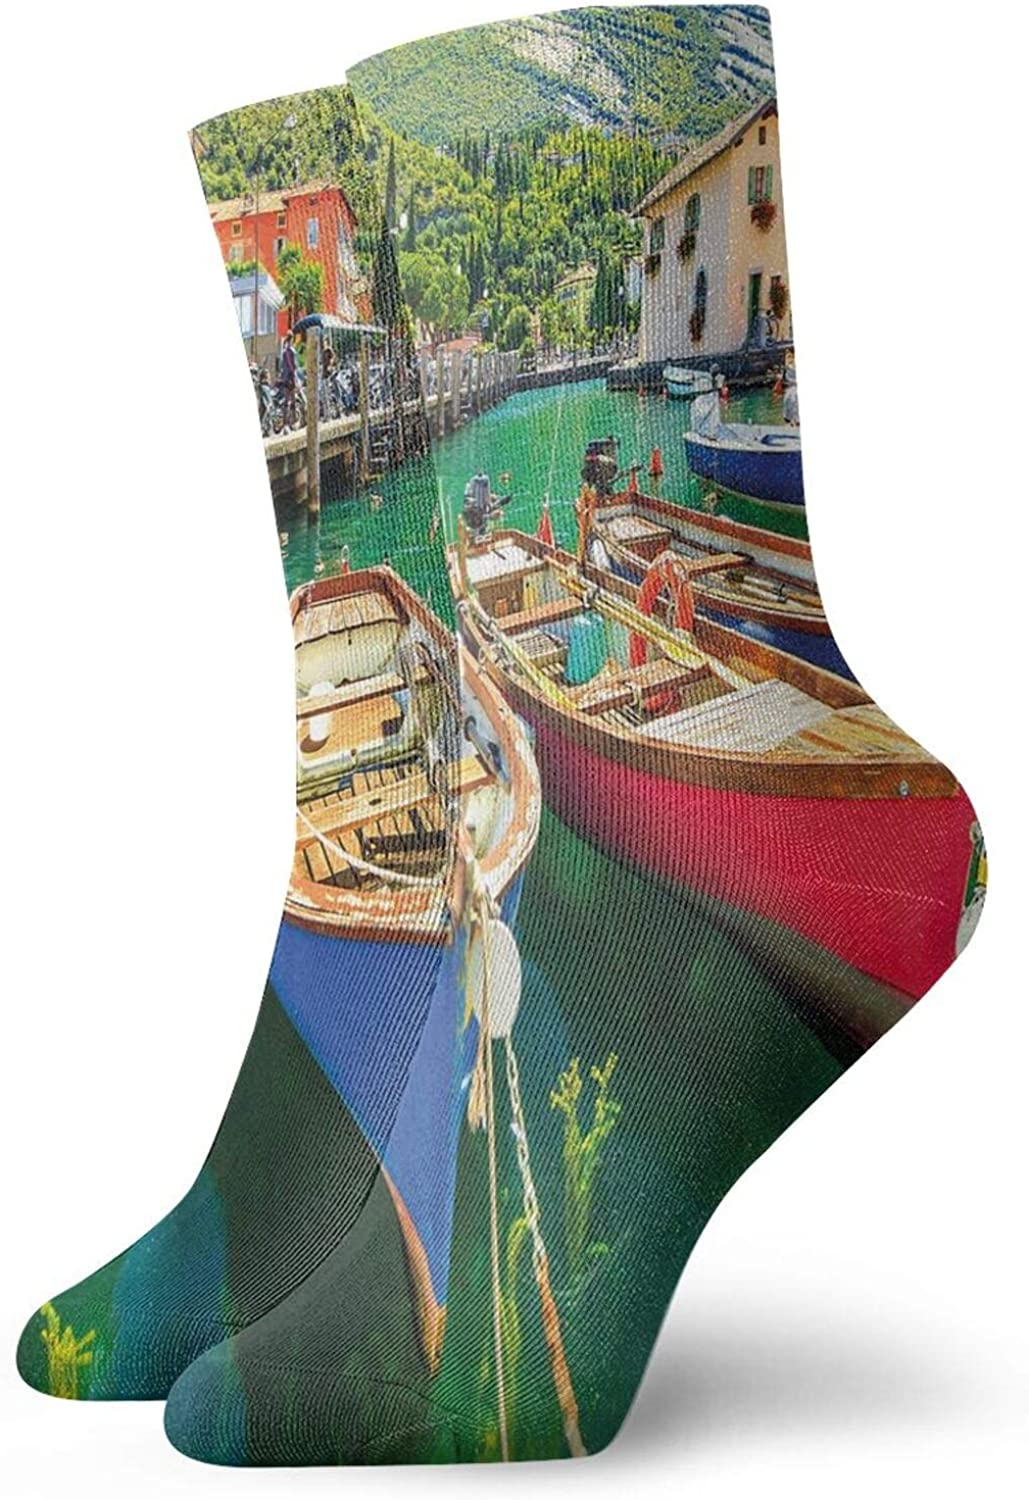 Compression High Socks-Summer Landscape And Wooden Boats On The Lake Garda Torbole Town Fishing Maritime Best for Running,Athletic,Hiking,Travel,Flight